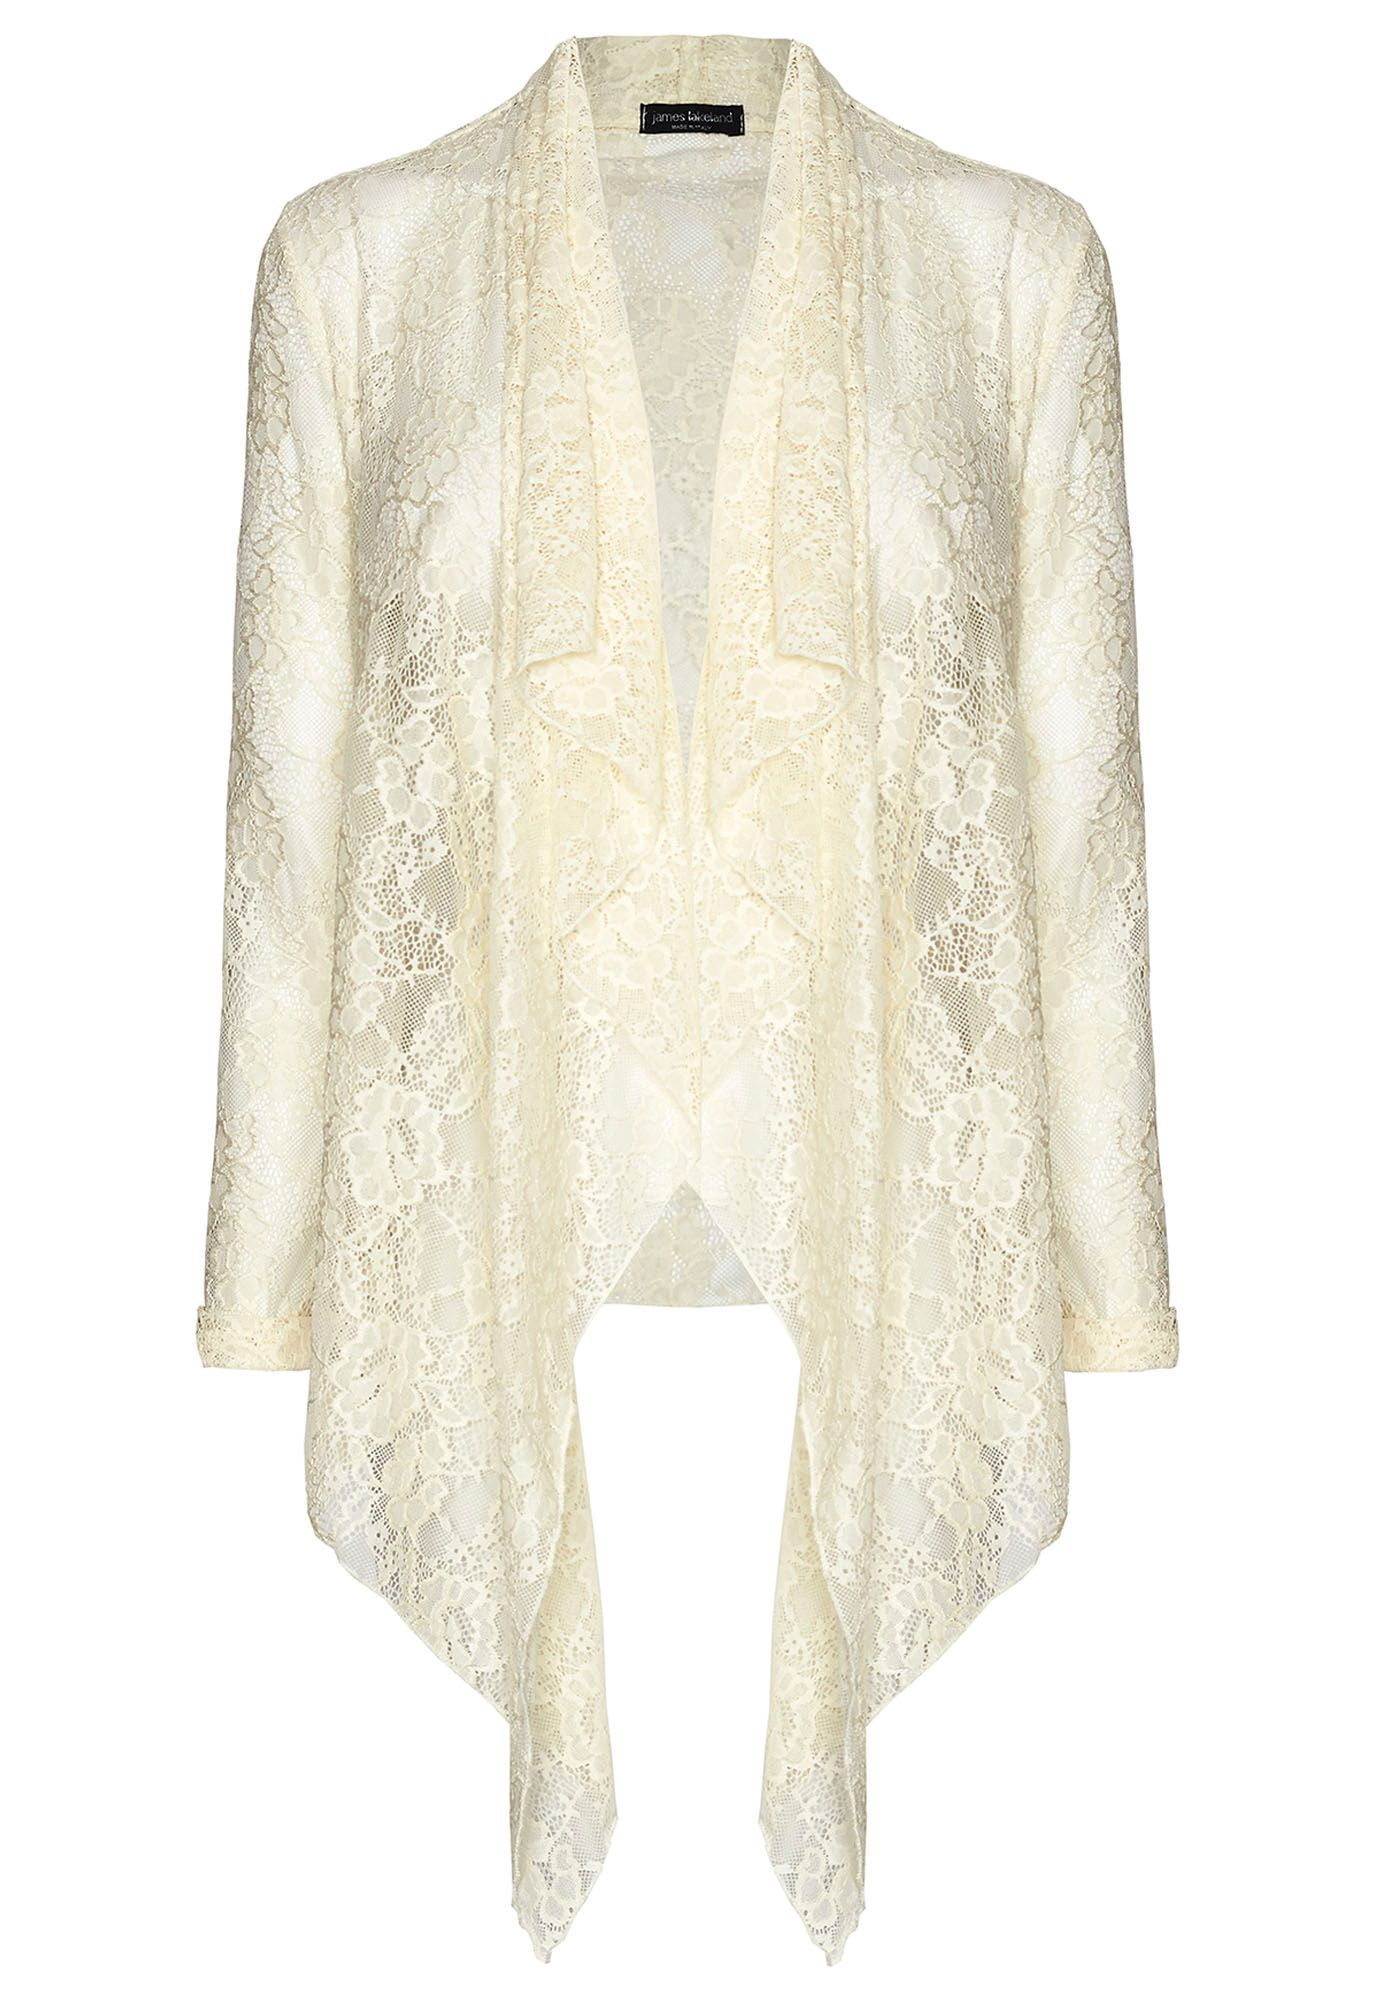 JAMES LAKELAND Beige Lace Cardigan | Body Tops / Bottoms ...